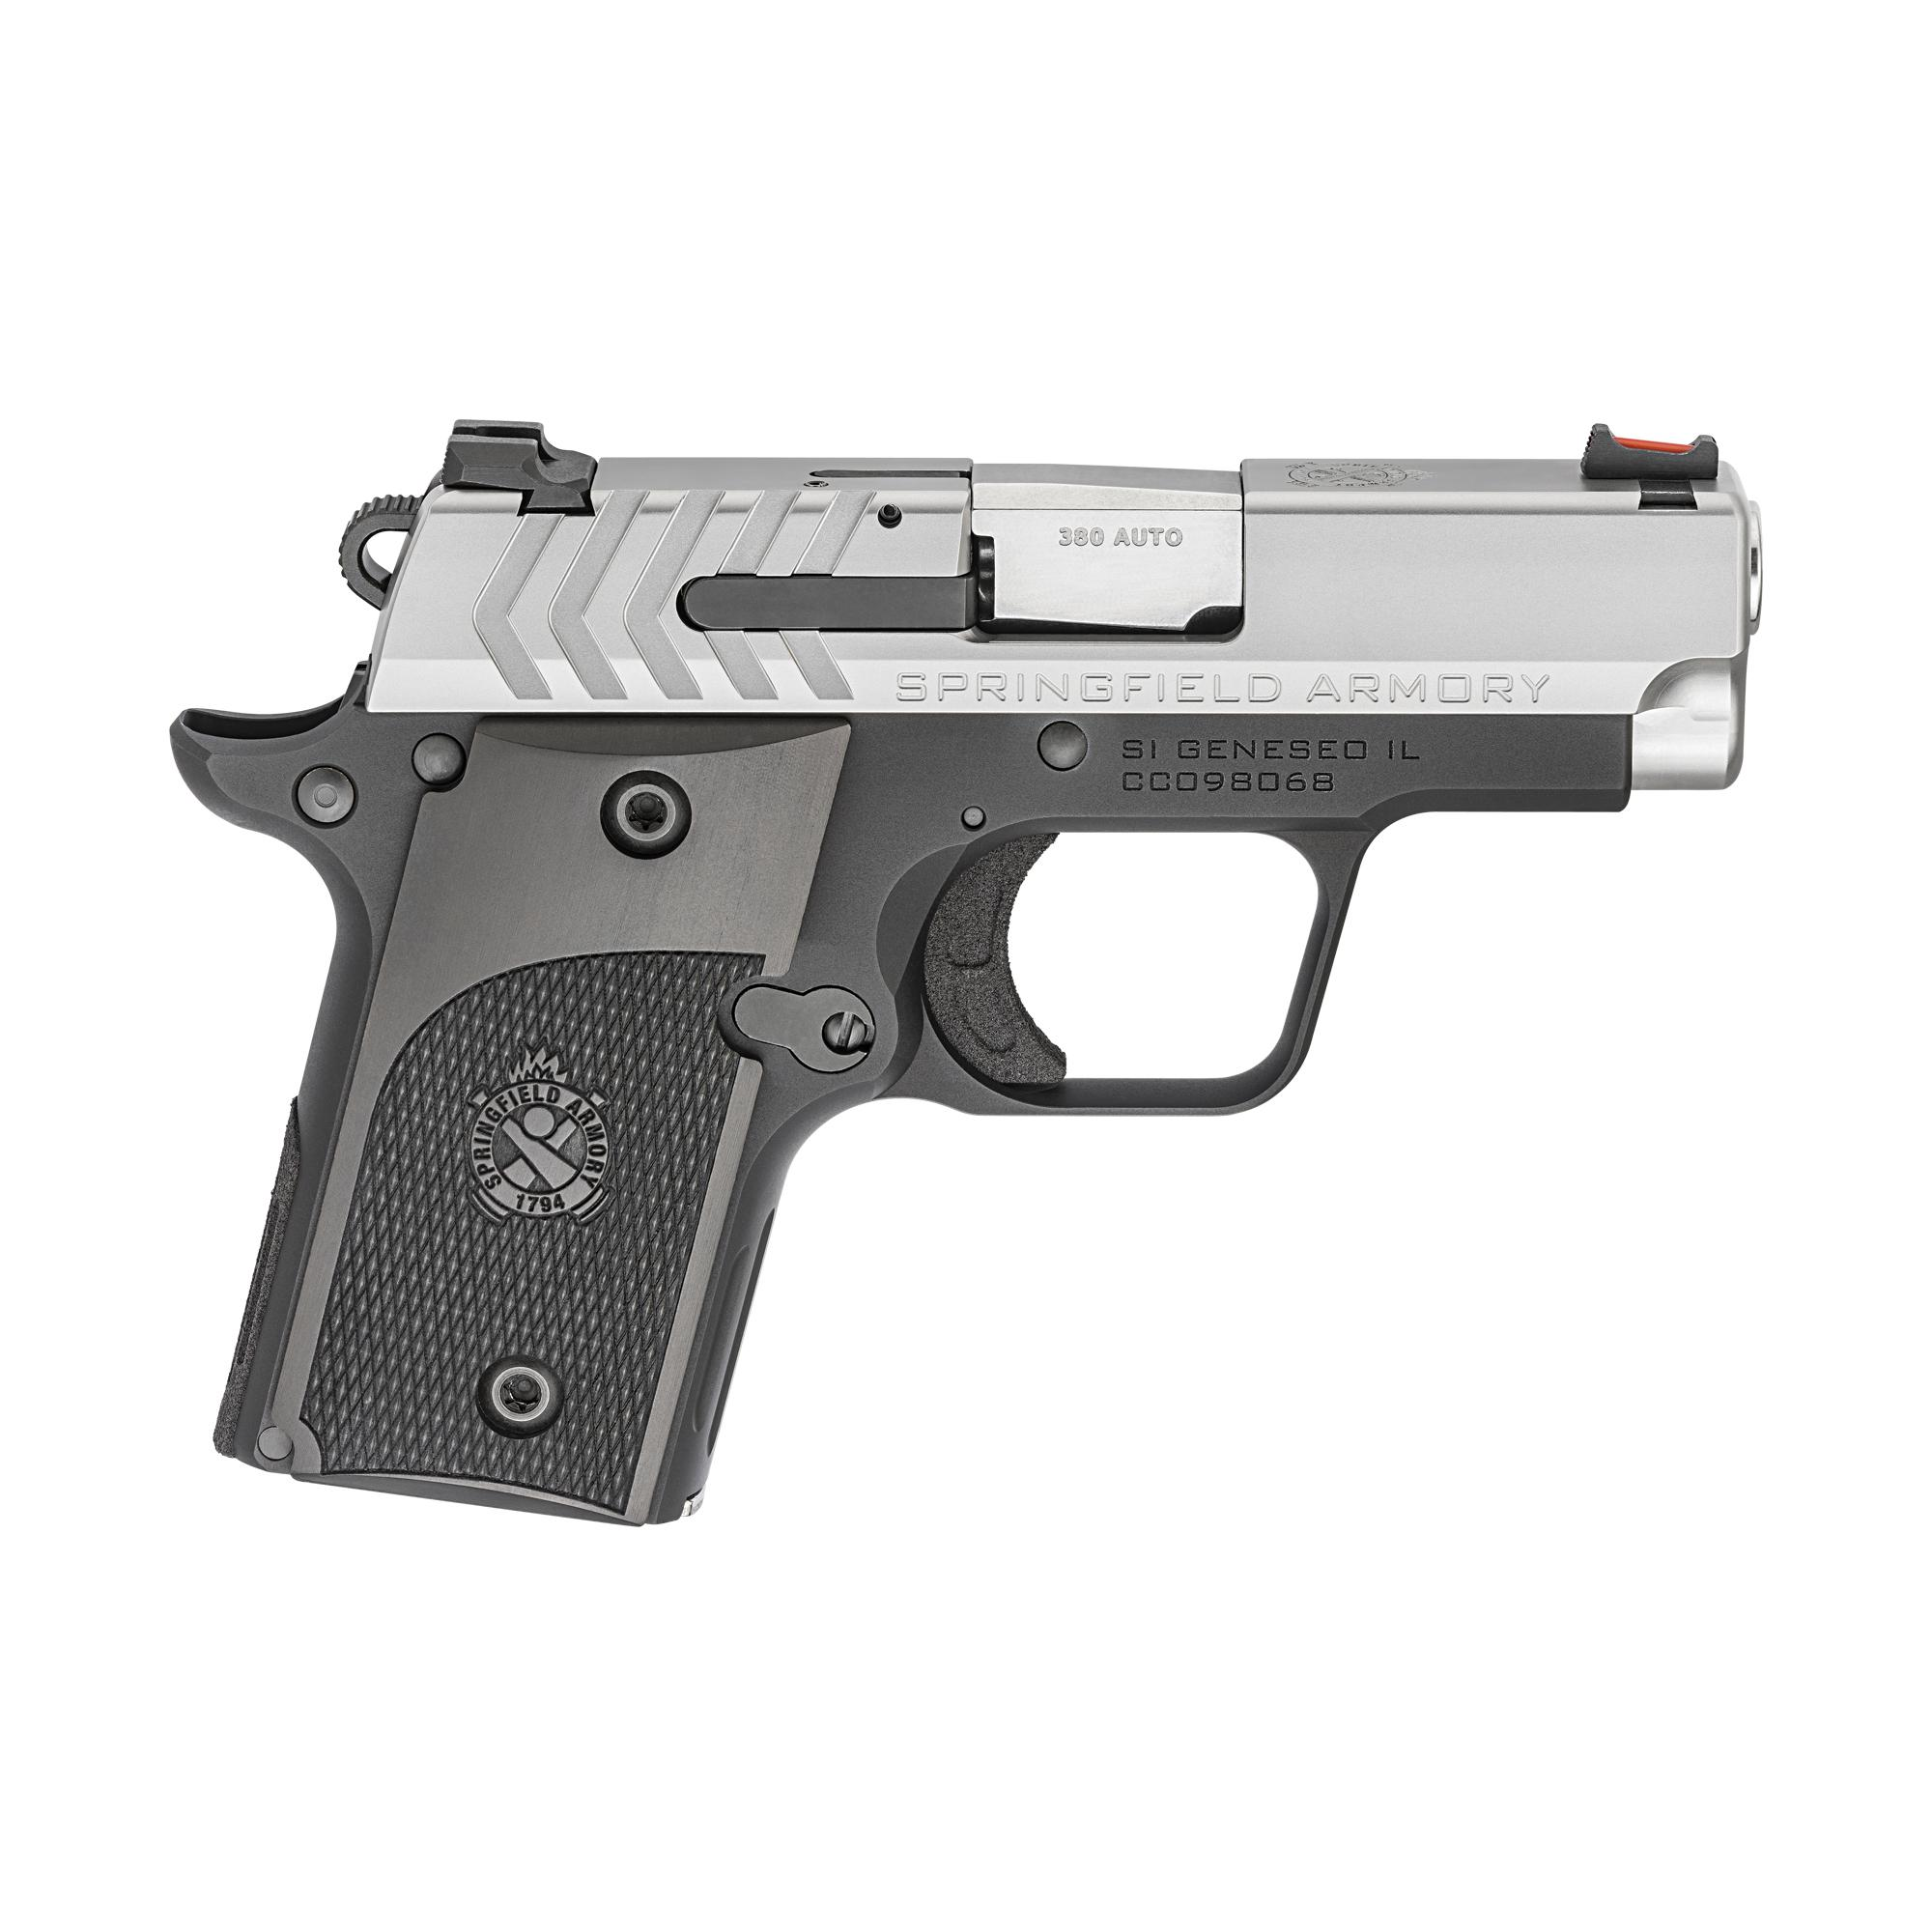 Springfield Armory 911 Alpha Stainless .380 ACP 2.7 Pocket Pistol - 6 Round